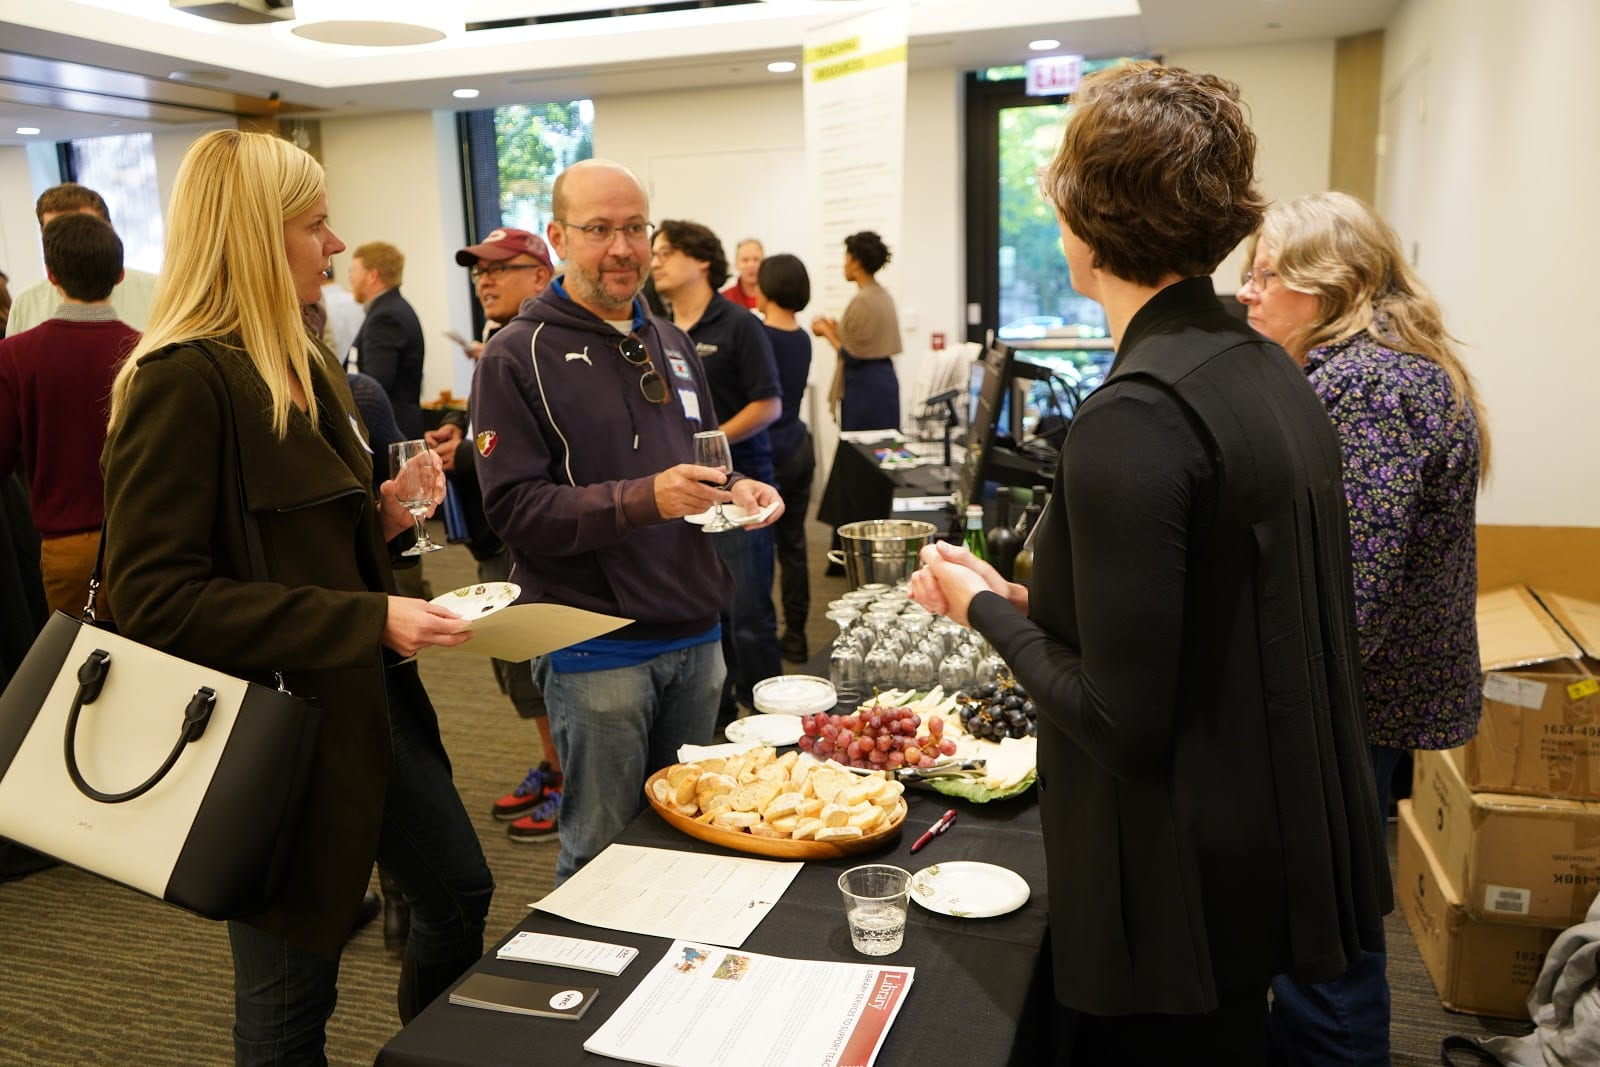 Bridget Madden (right foreground) of the Visual Resources Center speaks with attendees